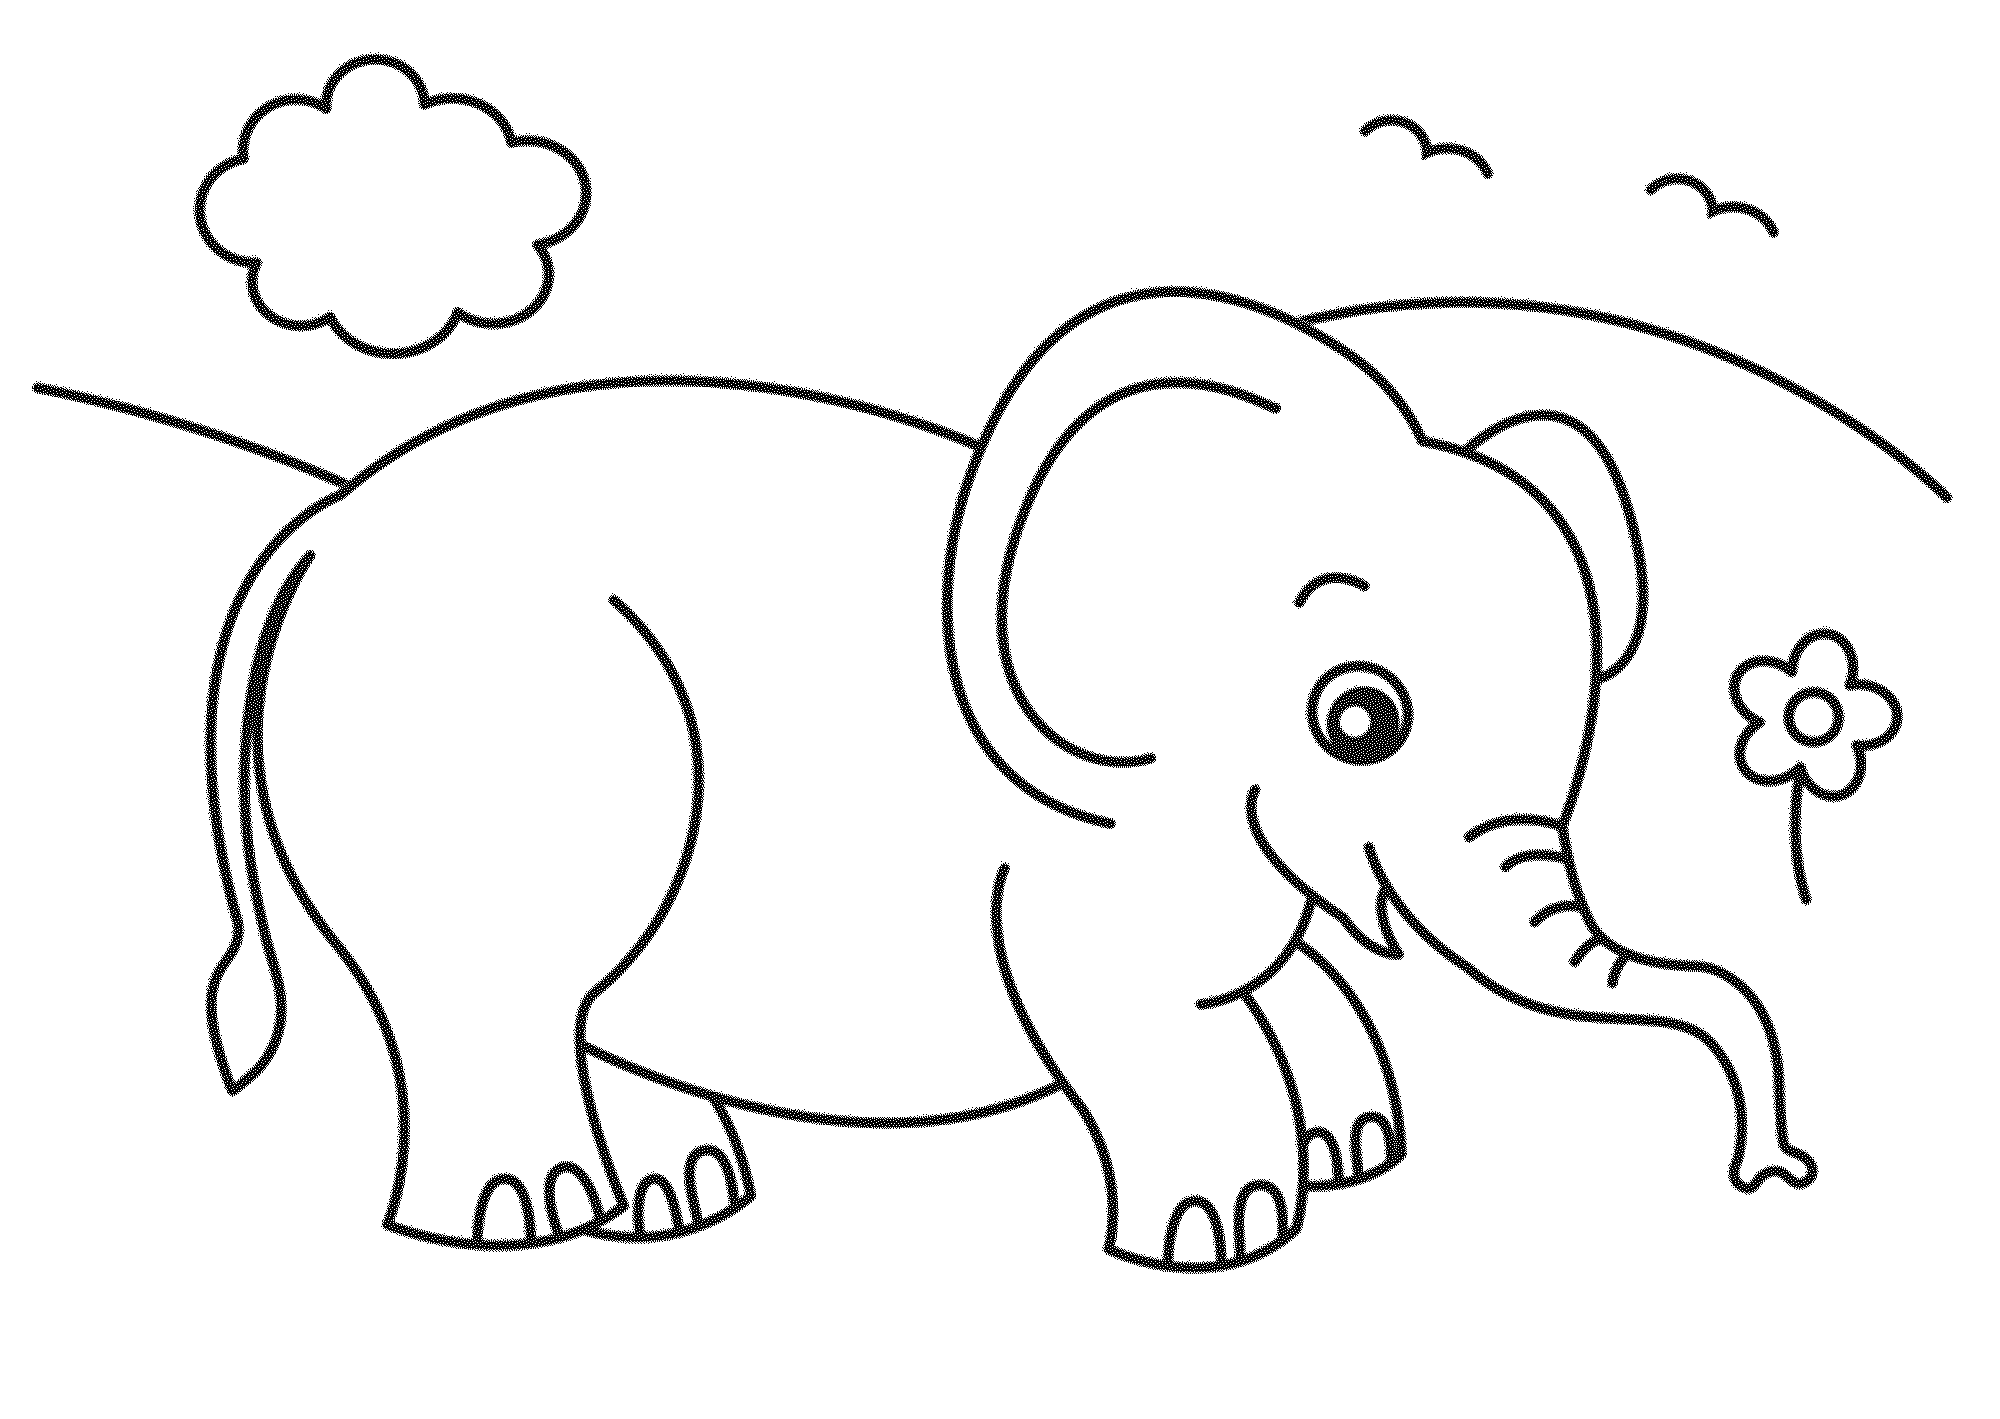 Elephant coloring picture